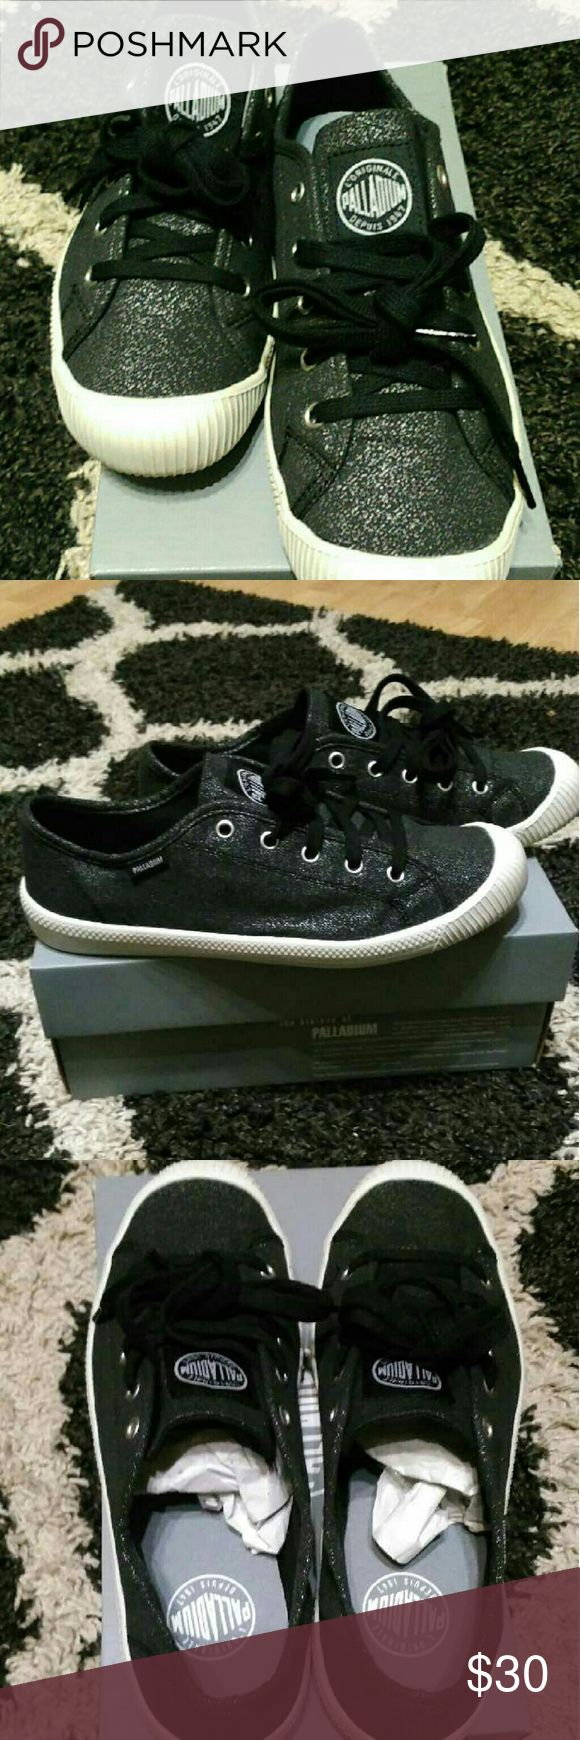 Palladium shoes Black and silver New in box Palladium Shoes Sneakers